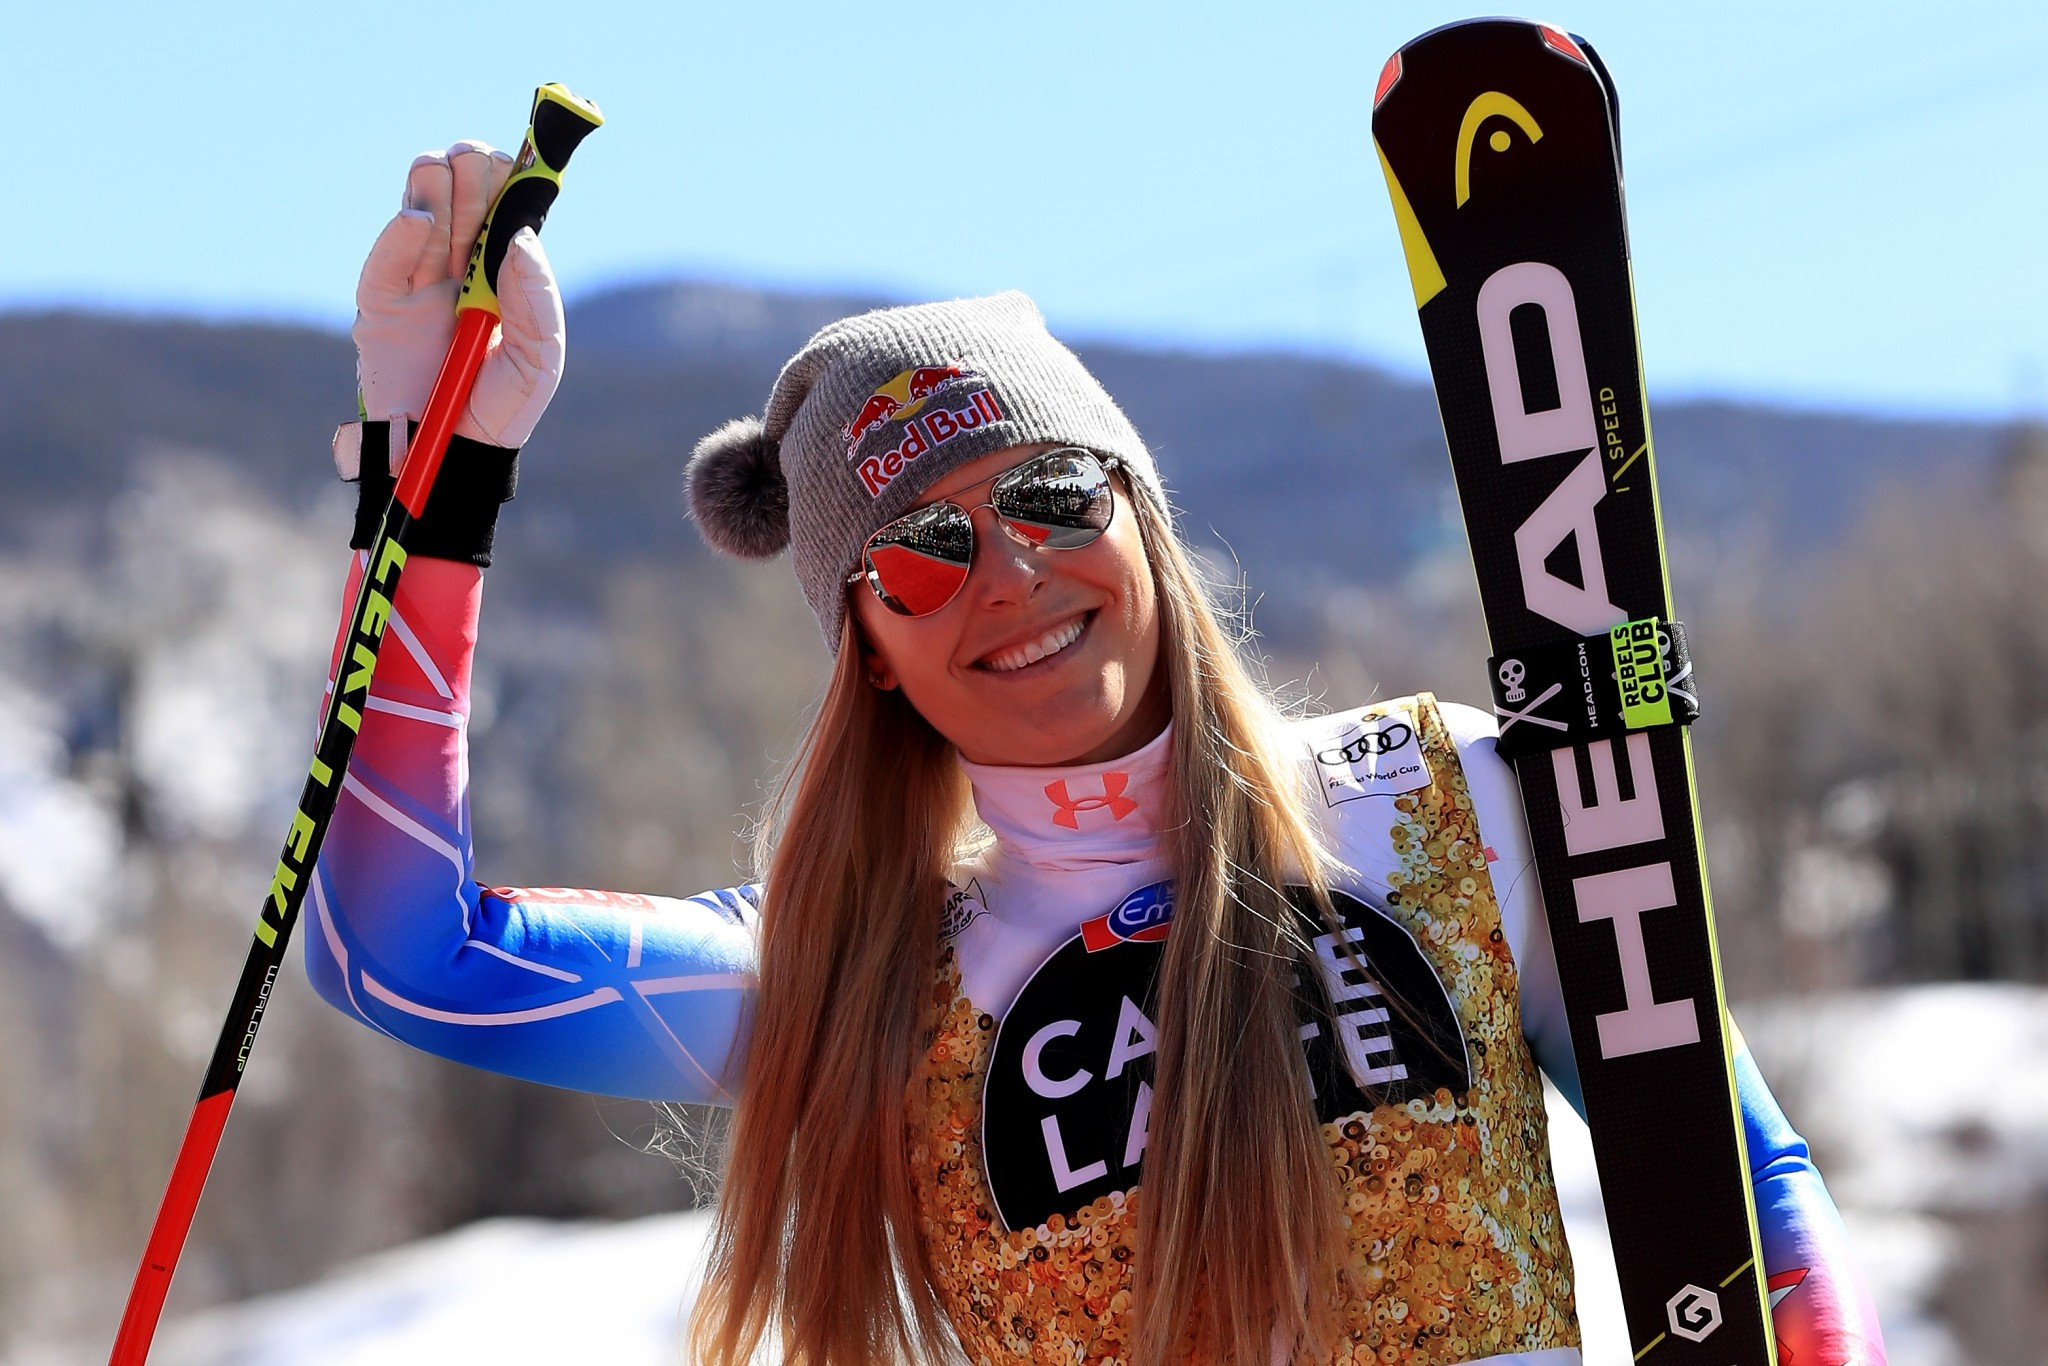 Vonn to make first appearance of season at Lake Louise in December